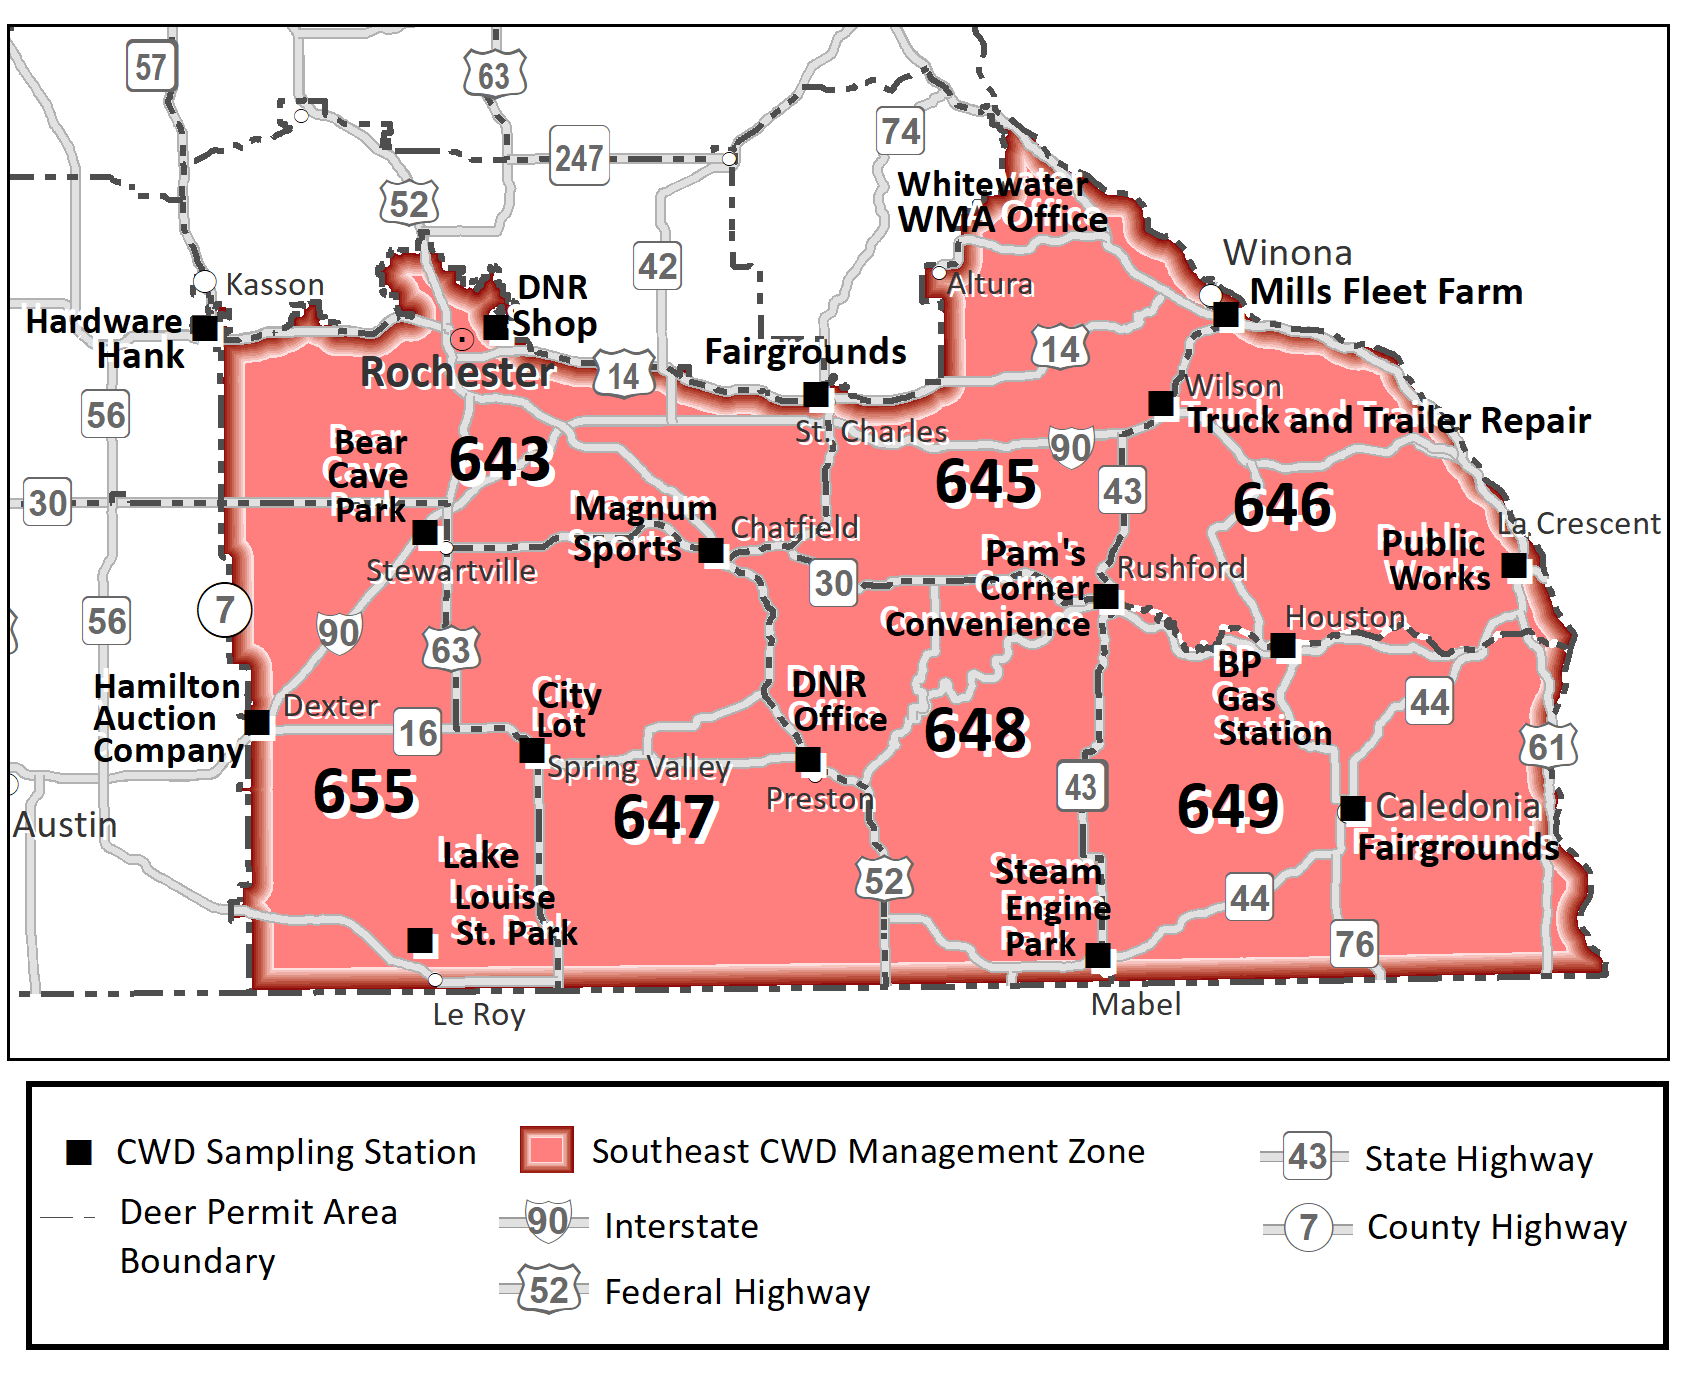 Map showing the DPAs included in the southeast CWD management zone (655, 643, 347, 648, 645, 646, 649) and sampling stations.